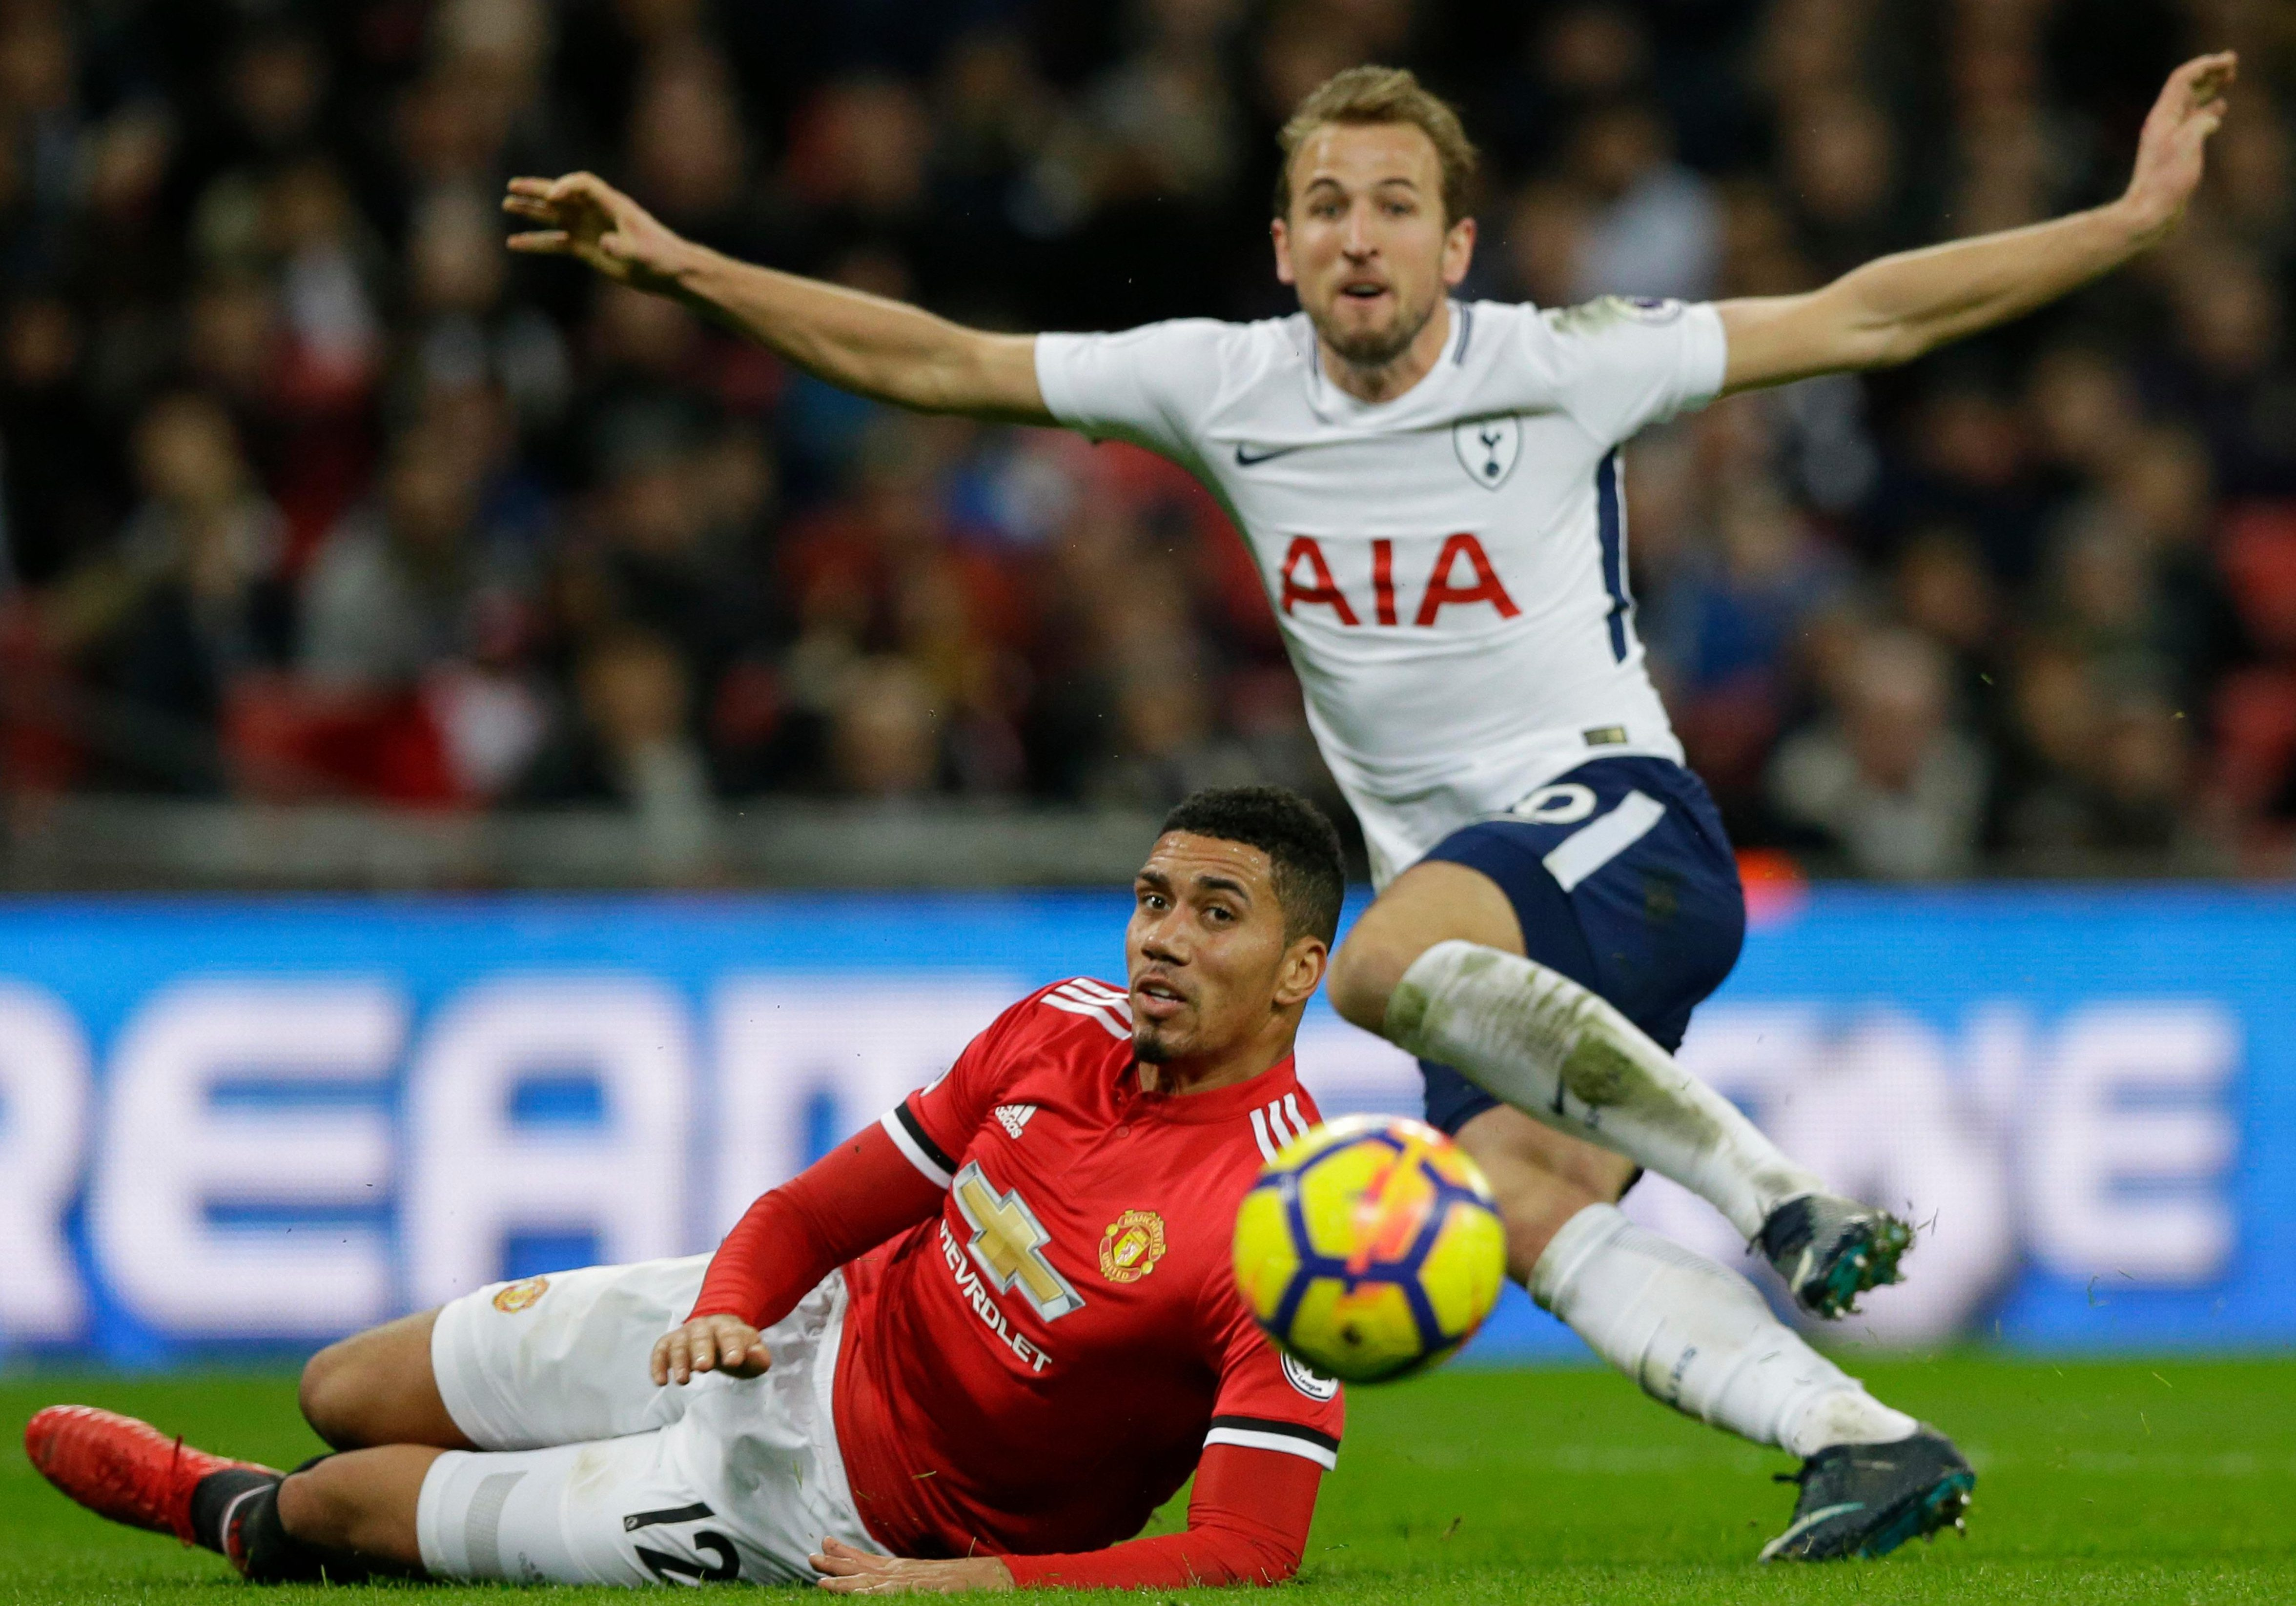 Kane has dominated defences since breaking into the Tottenham first-team